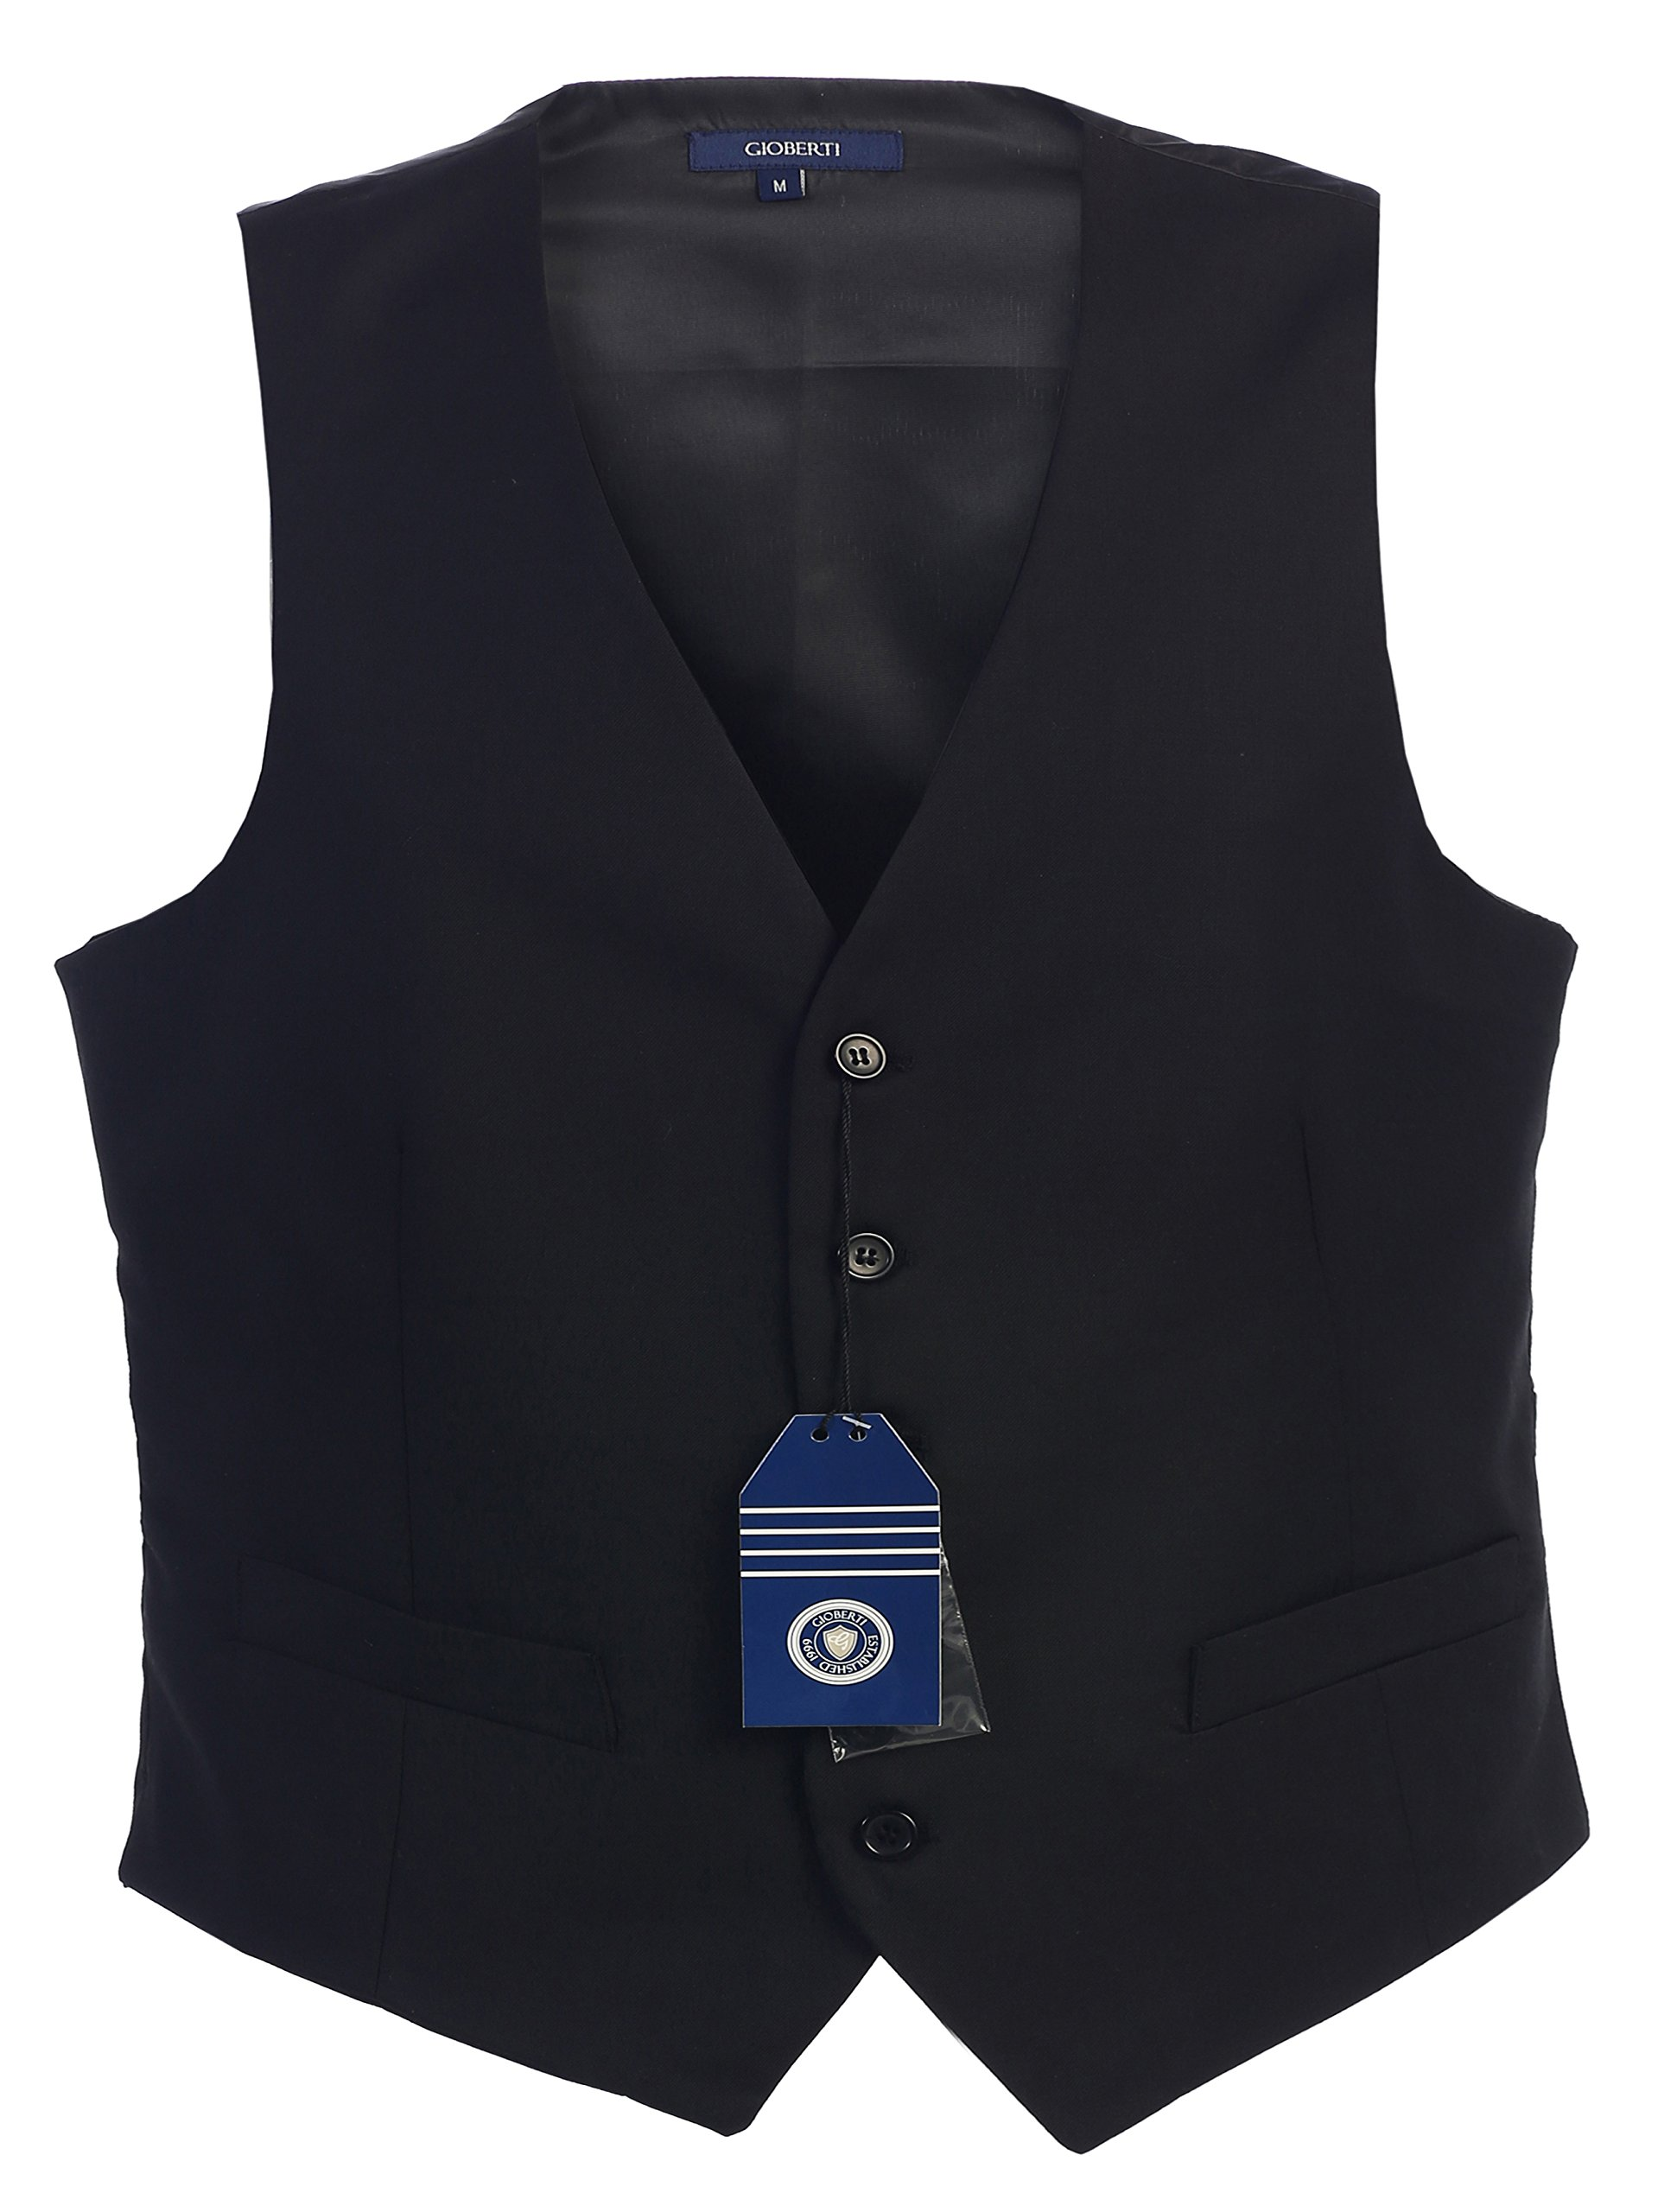 Gioberti Mens 5 Button Formal Suit Vest, Black, X-Large by Gioberti